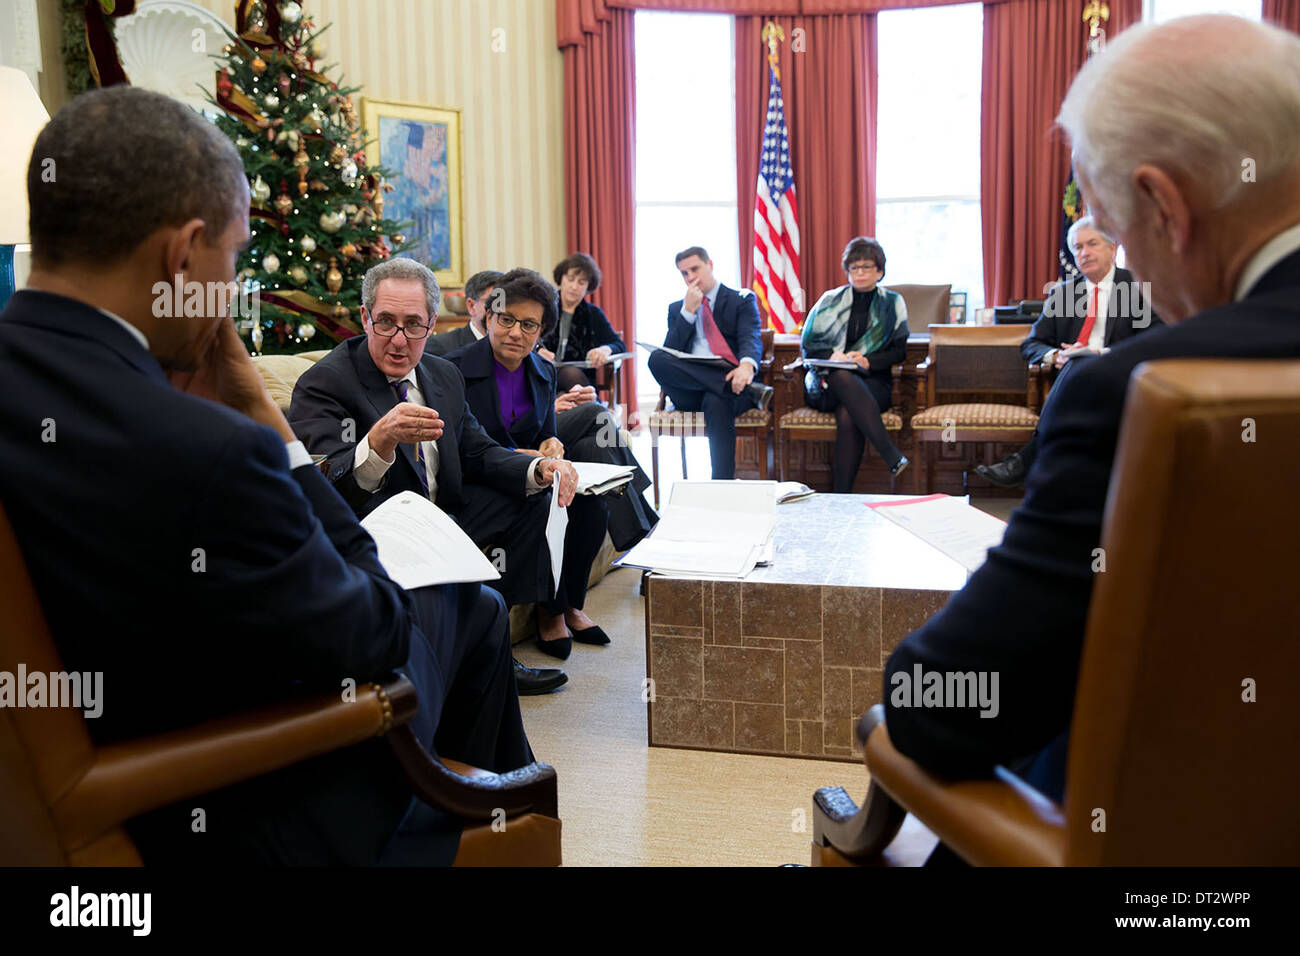 US President Barack Obama and Vice President Joe Biden meet with U.S. Trade Representative Mike Froman and Commerce Secretary Penny Pritzker in the Oval Office of the White House December 16, 2013 in Washington, DC. - Stock Image